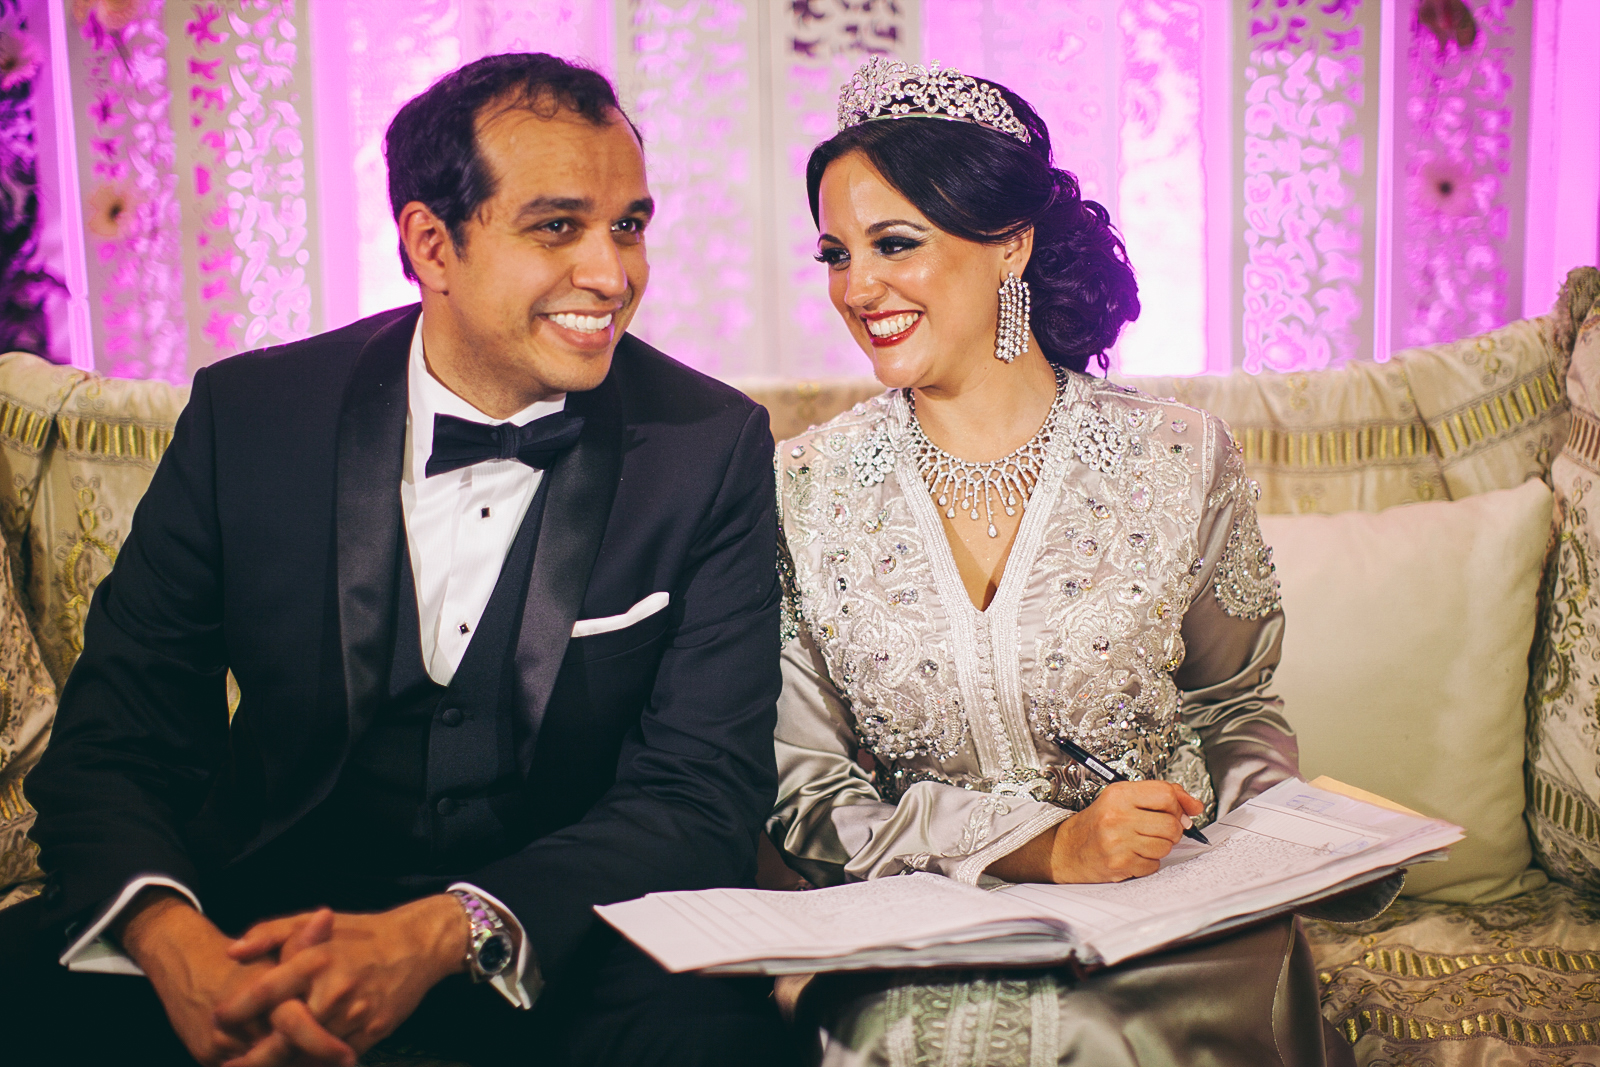 traditional_moroccan_wedding_photographry_casablanca_morocco_houda_vivek_ebony_siovhan_bokeh_photography_081.jpg